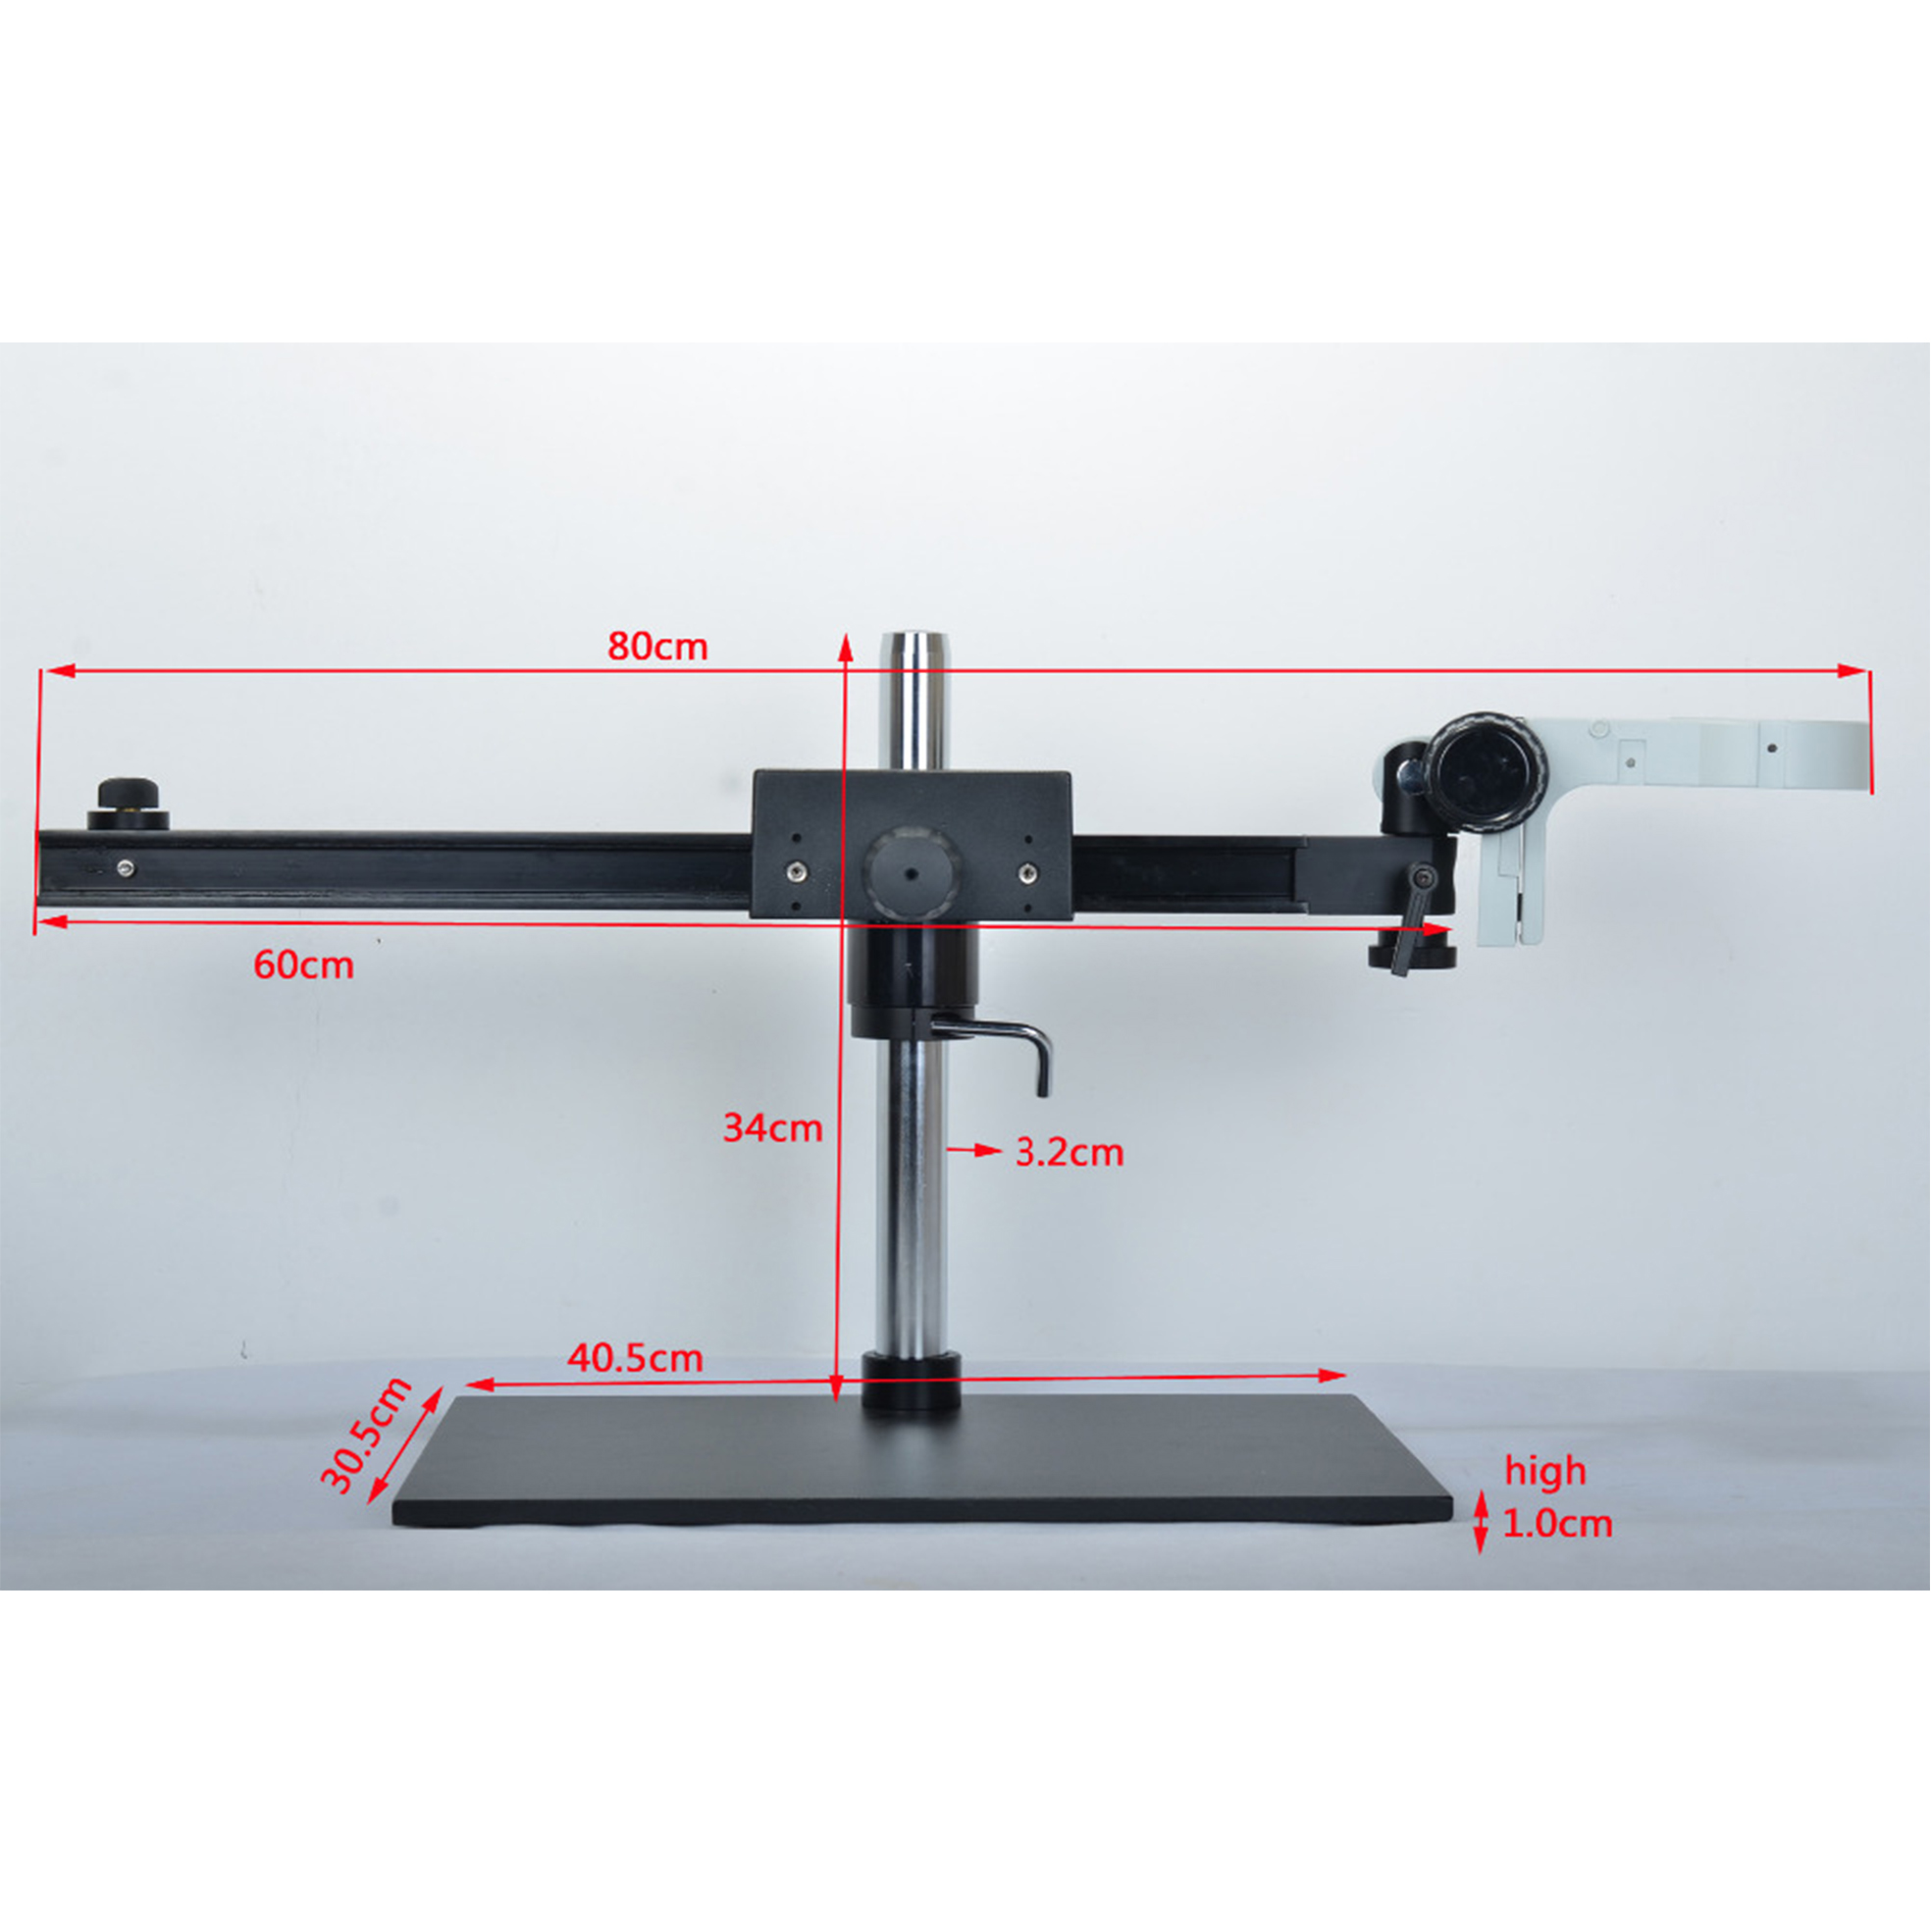 HAYEAR 76mm Ring Holder Big Size Zware Verstelbare Boom Grote Stereo Arm Tafel Stand Voor Lab Industrie Microscoop camera